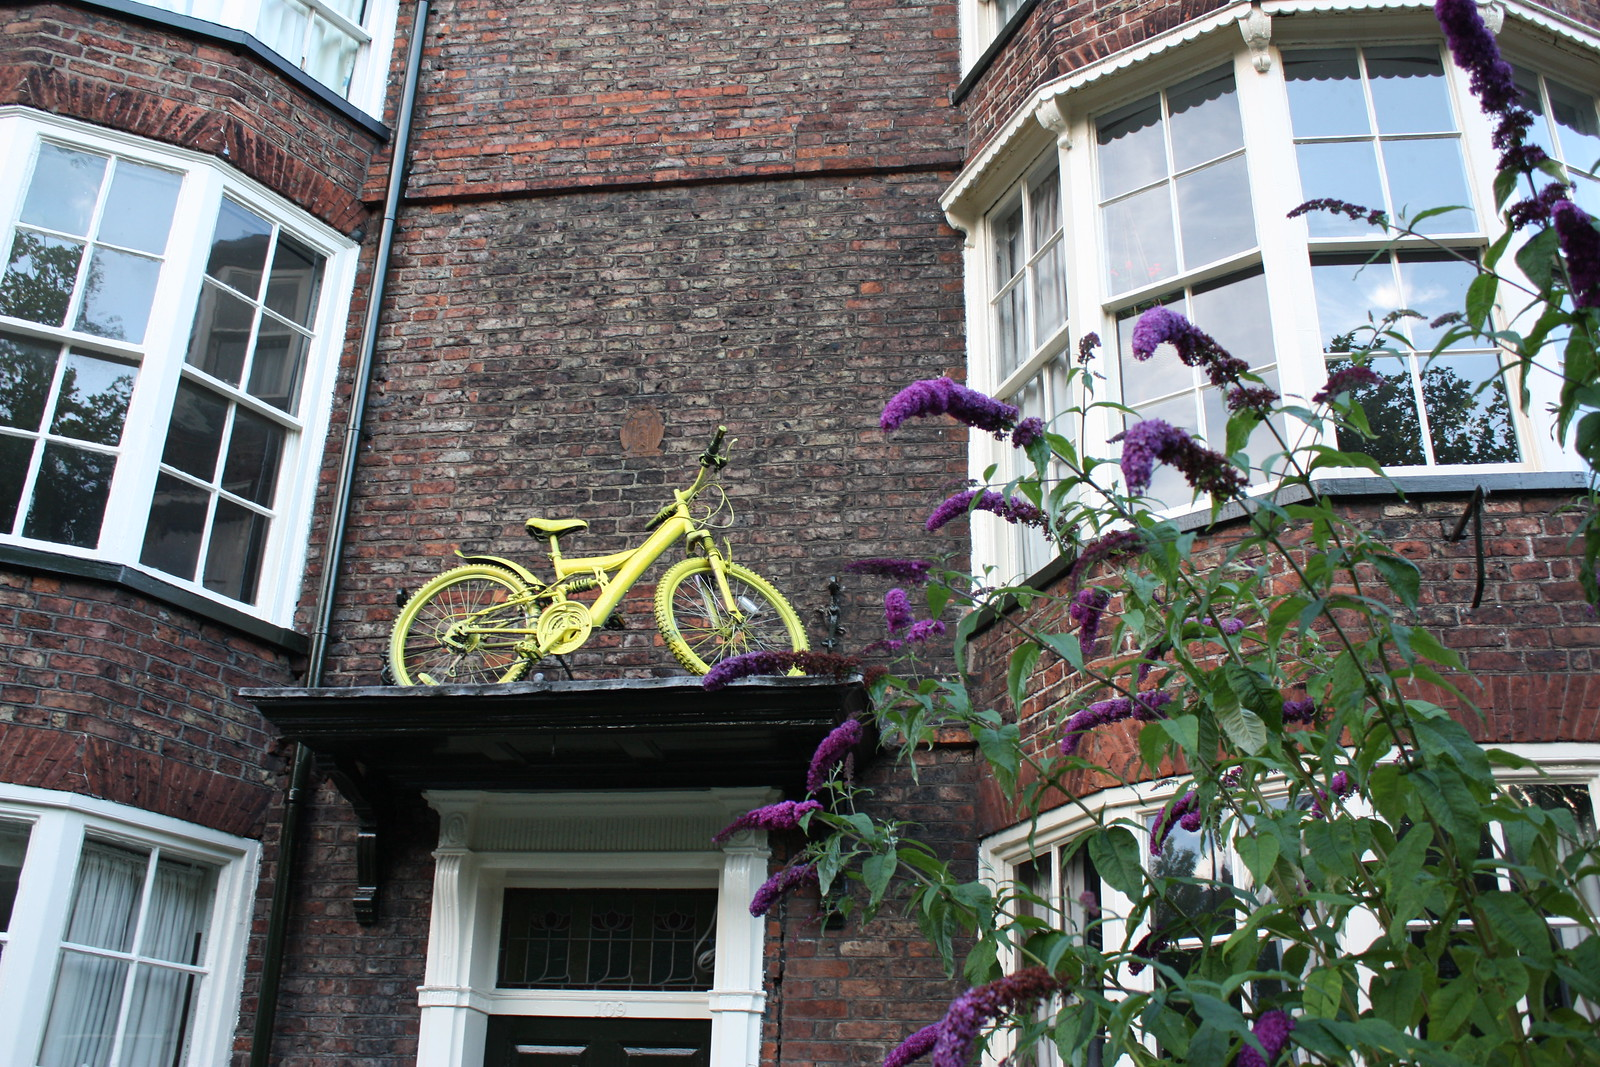 York yellow bike